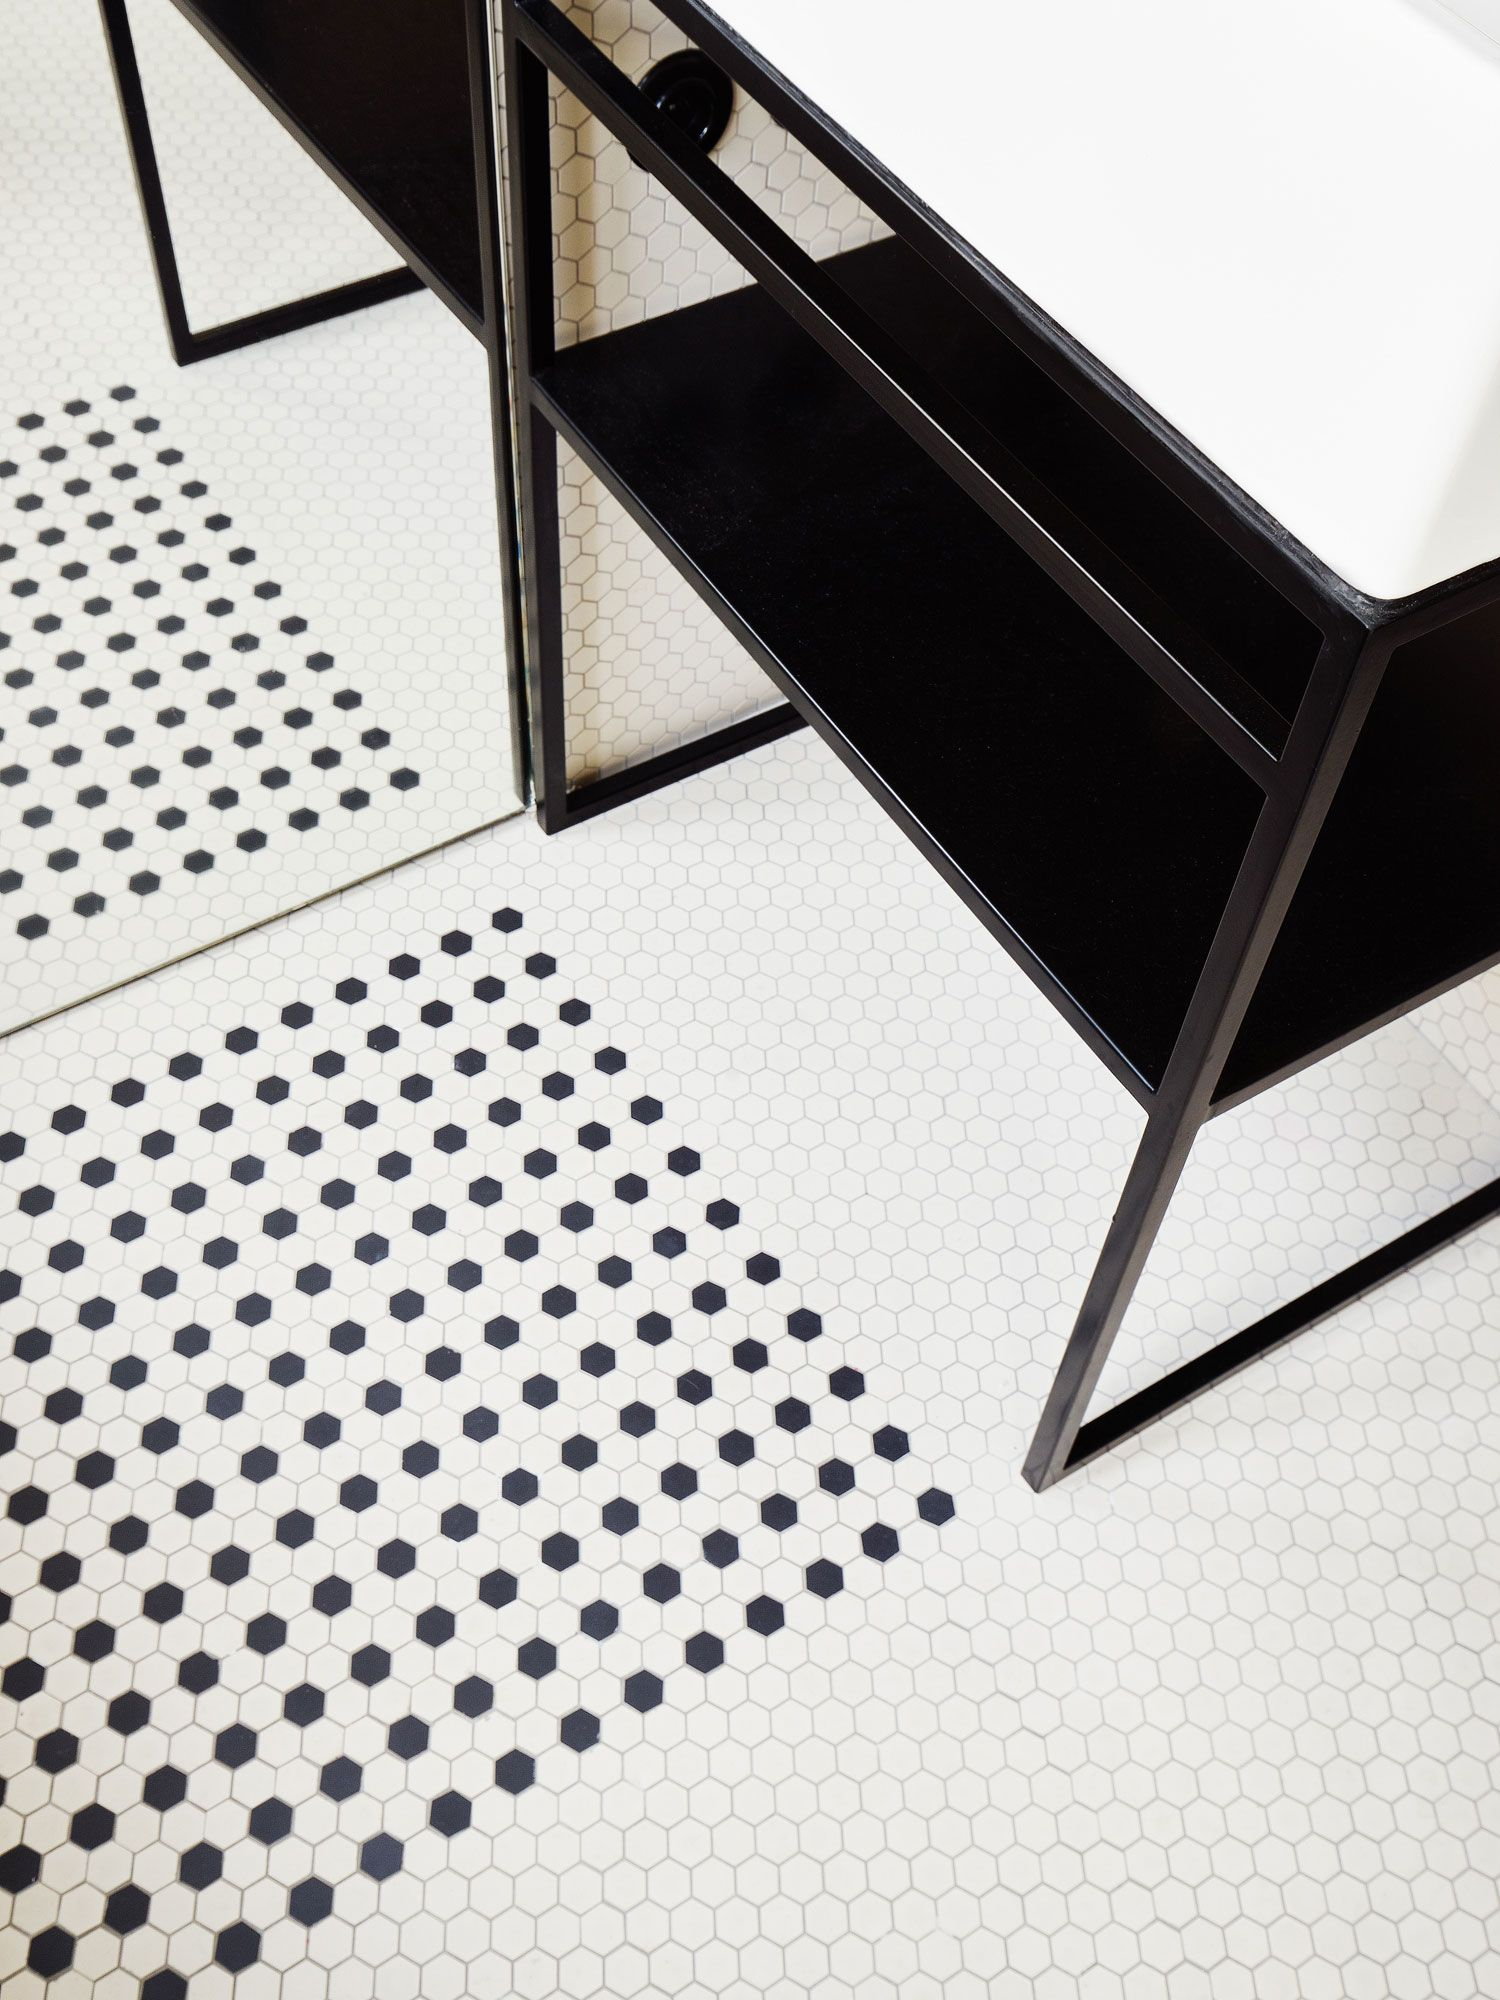 hubert apartment in paris by septembre architecture yellowtrace yellowtrace hex tilemosaic